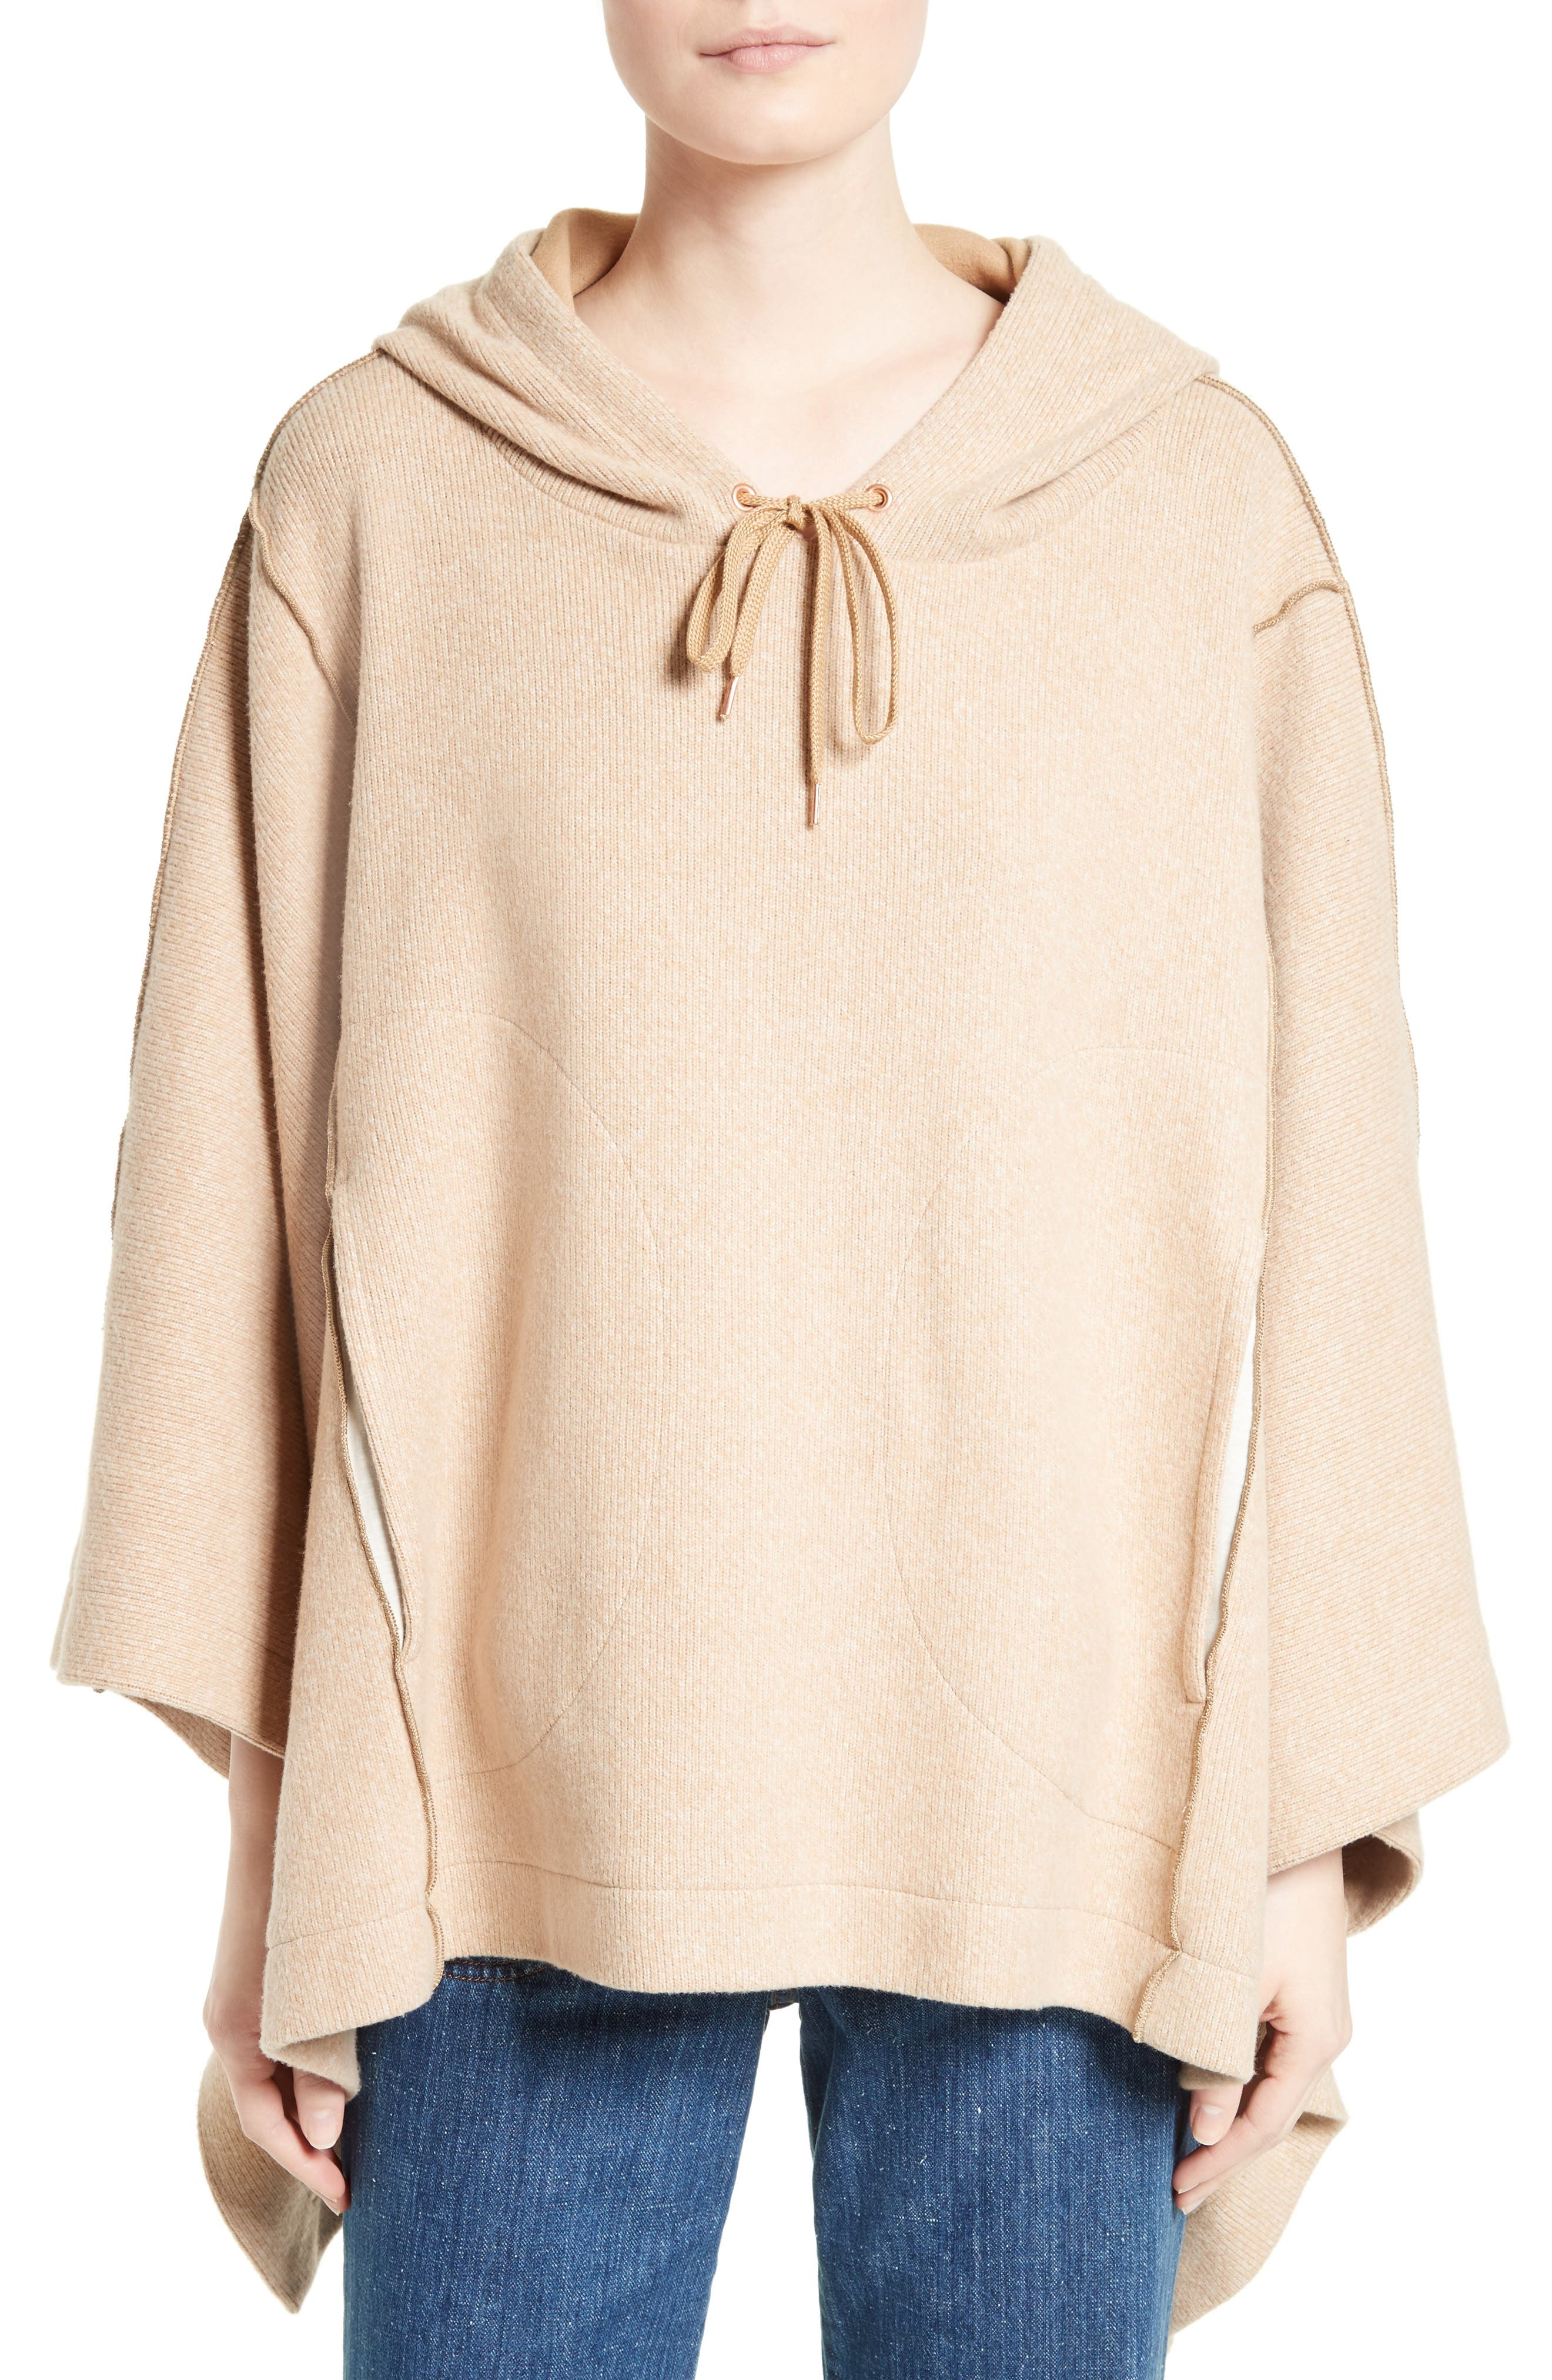 SEE BY CHLOÉ Cotton Blend Poncho